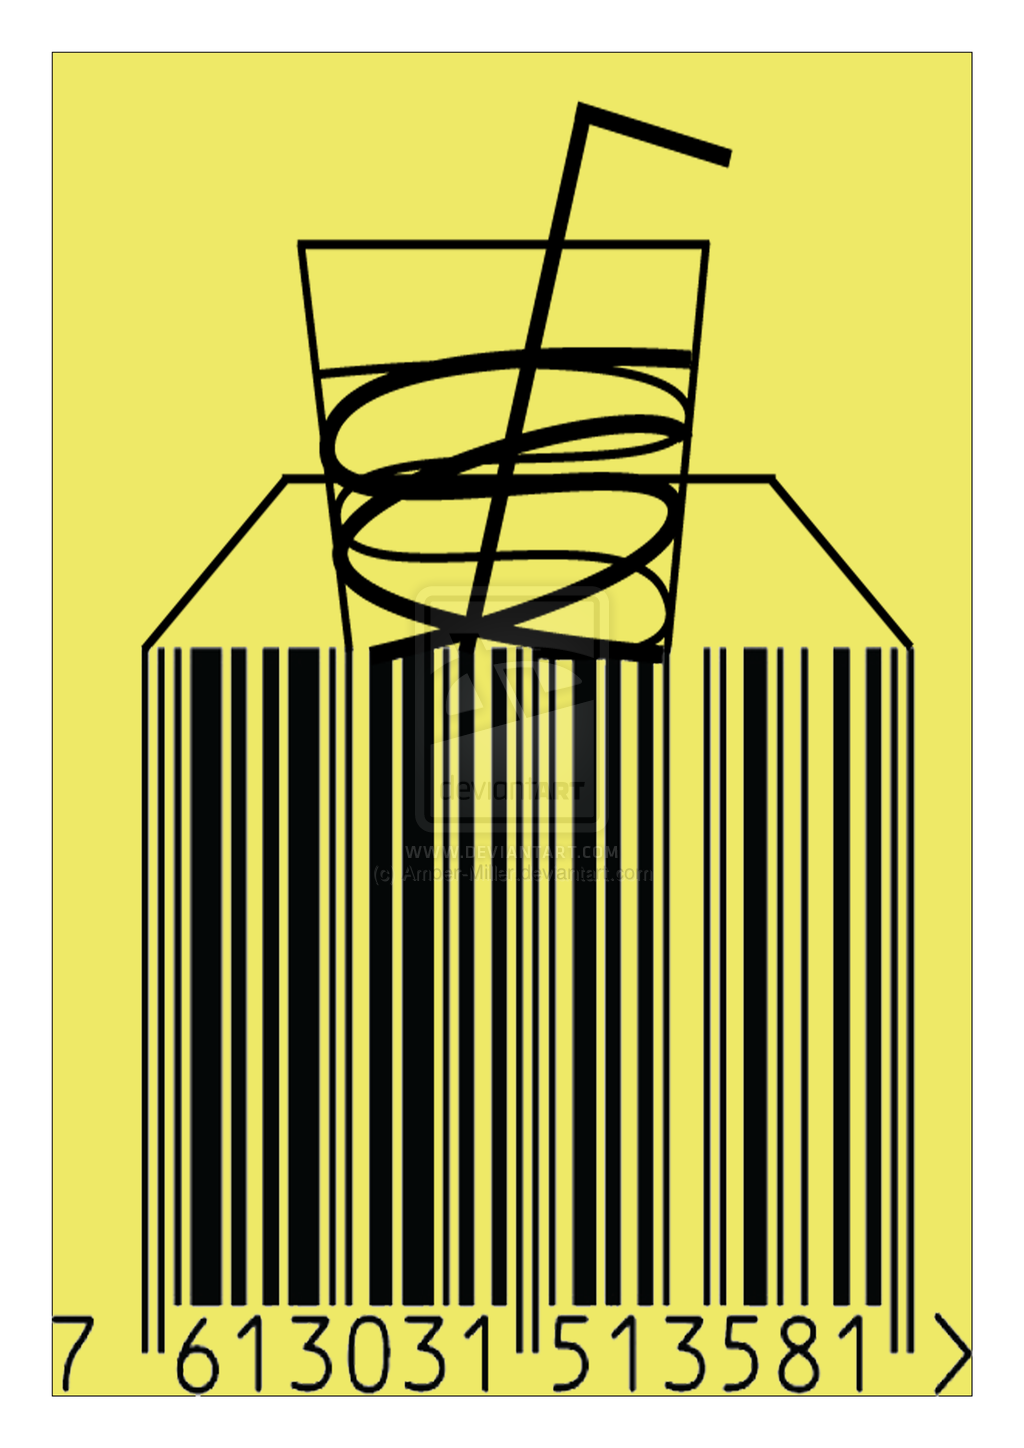 barcode image clipart - photo #47